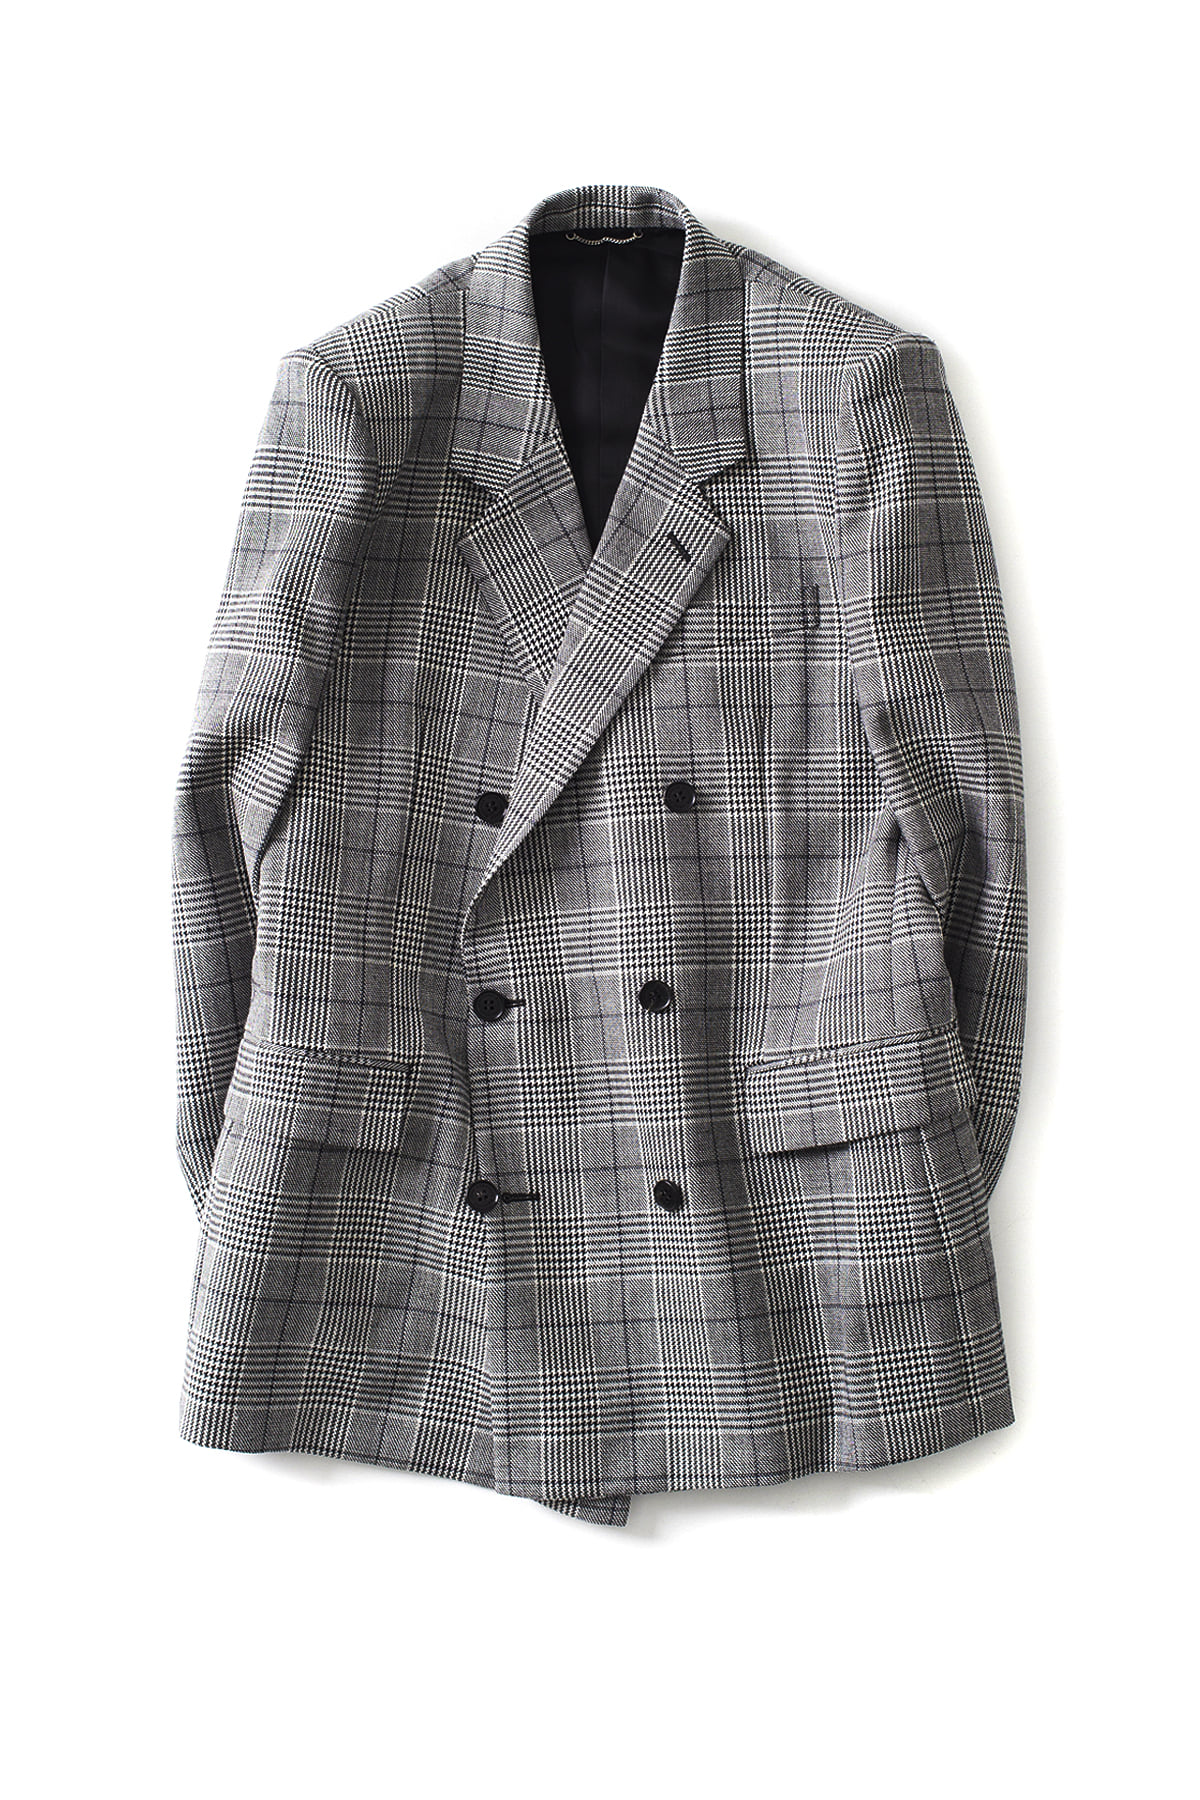 JOHN LAWRENCE SULLIVAN : Glen Check Double Breasted Jacket (Grey)